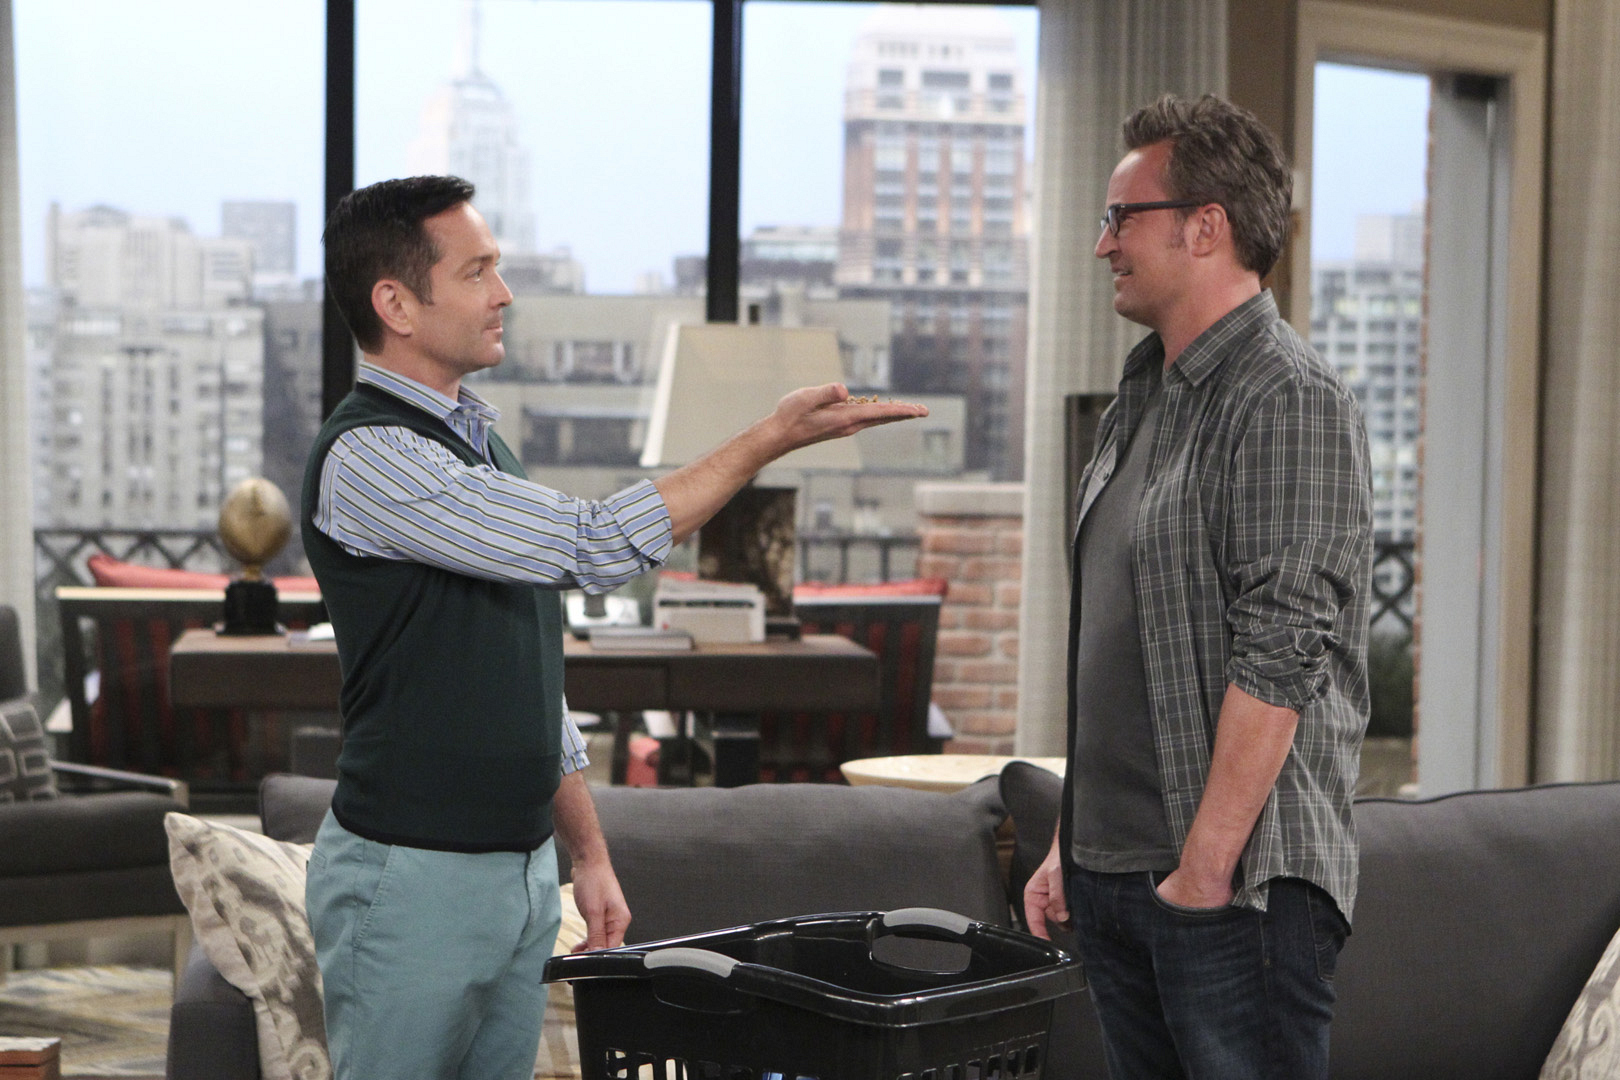 The Odd Couple returns for a 3rd season on Monday, Oct. 17 at 9:30/8:30c.